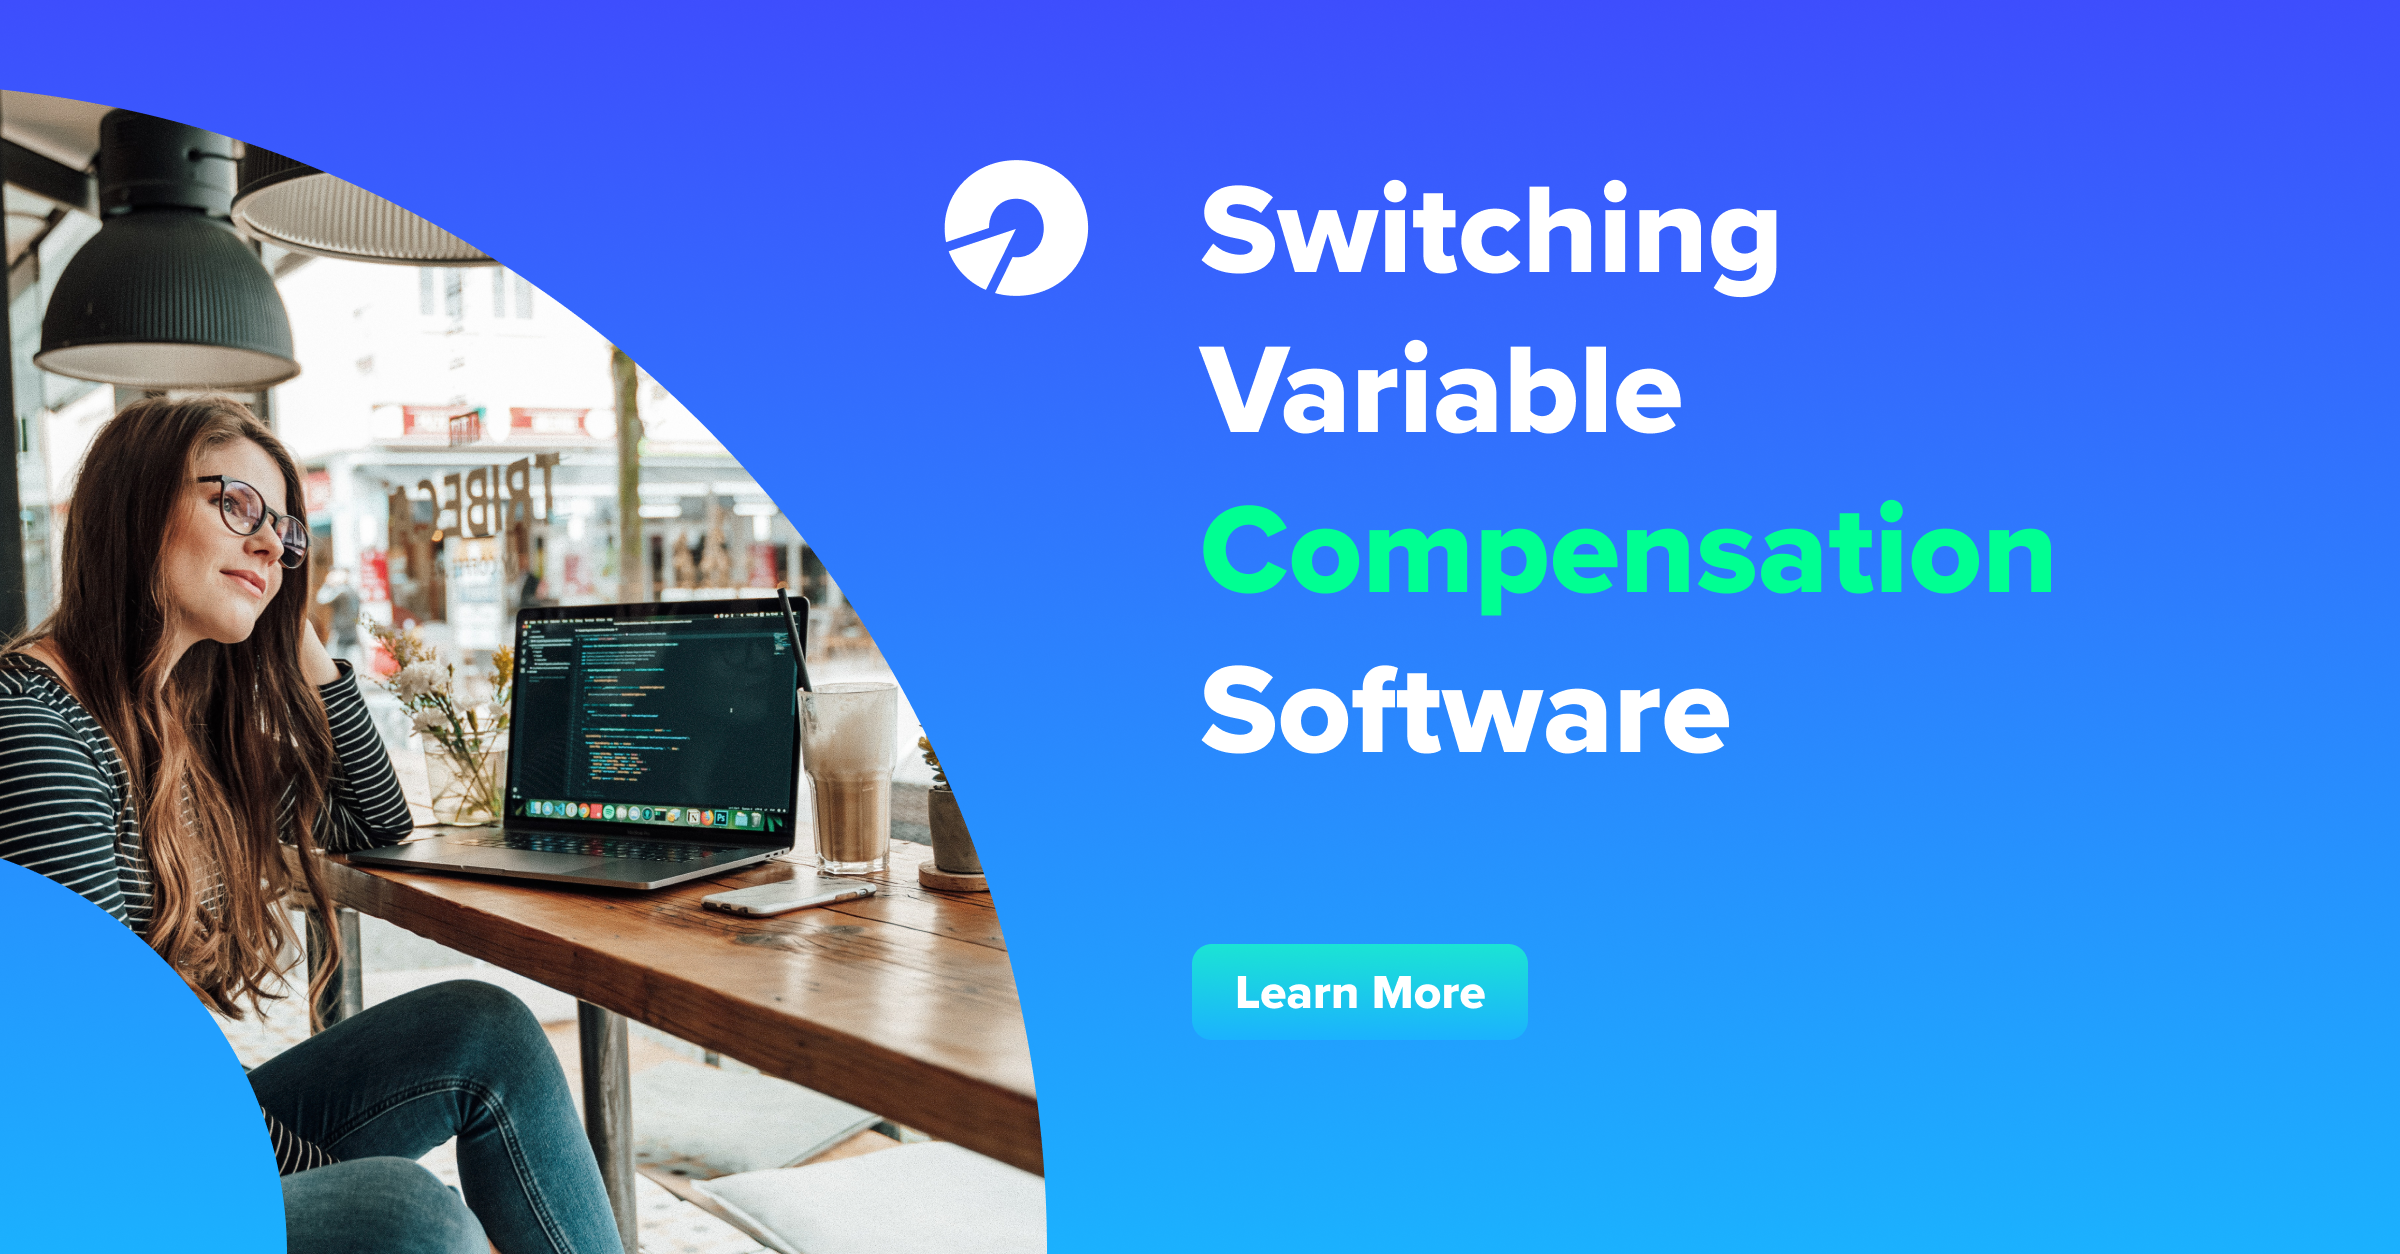 Switching Variable Compensation Software